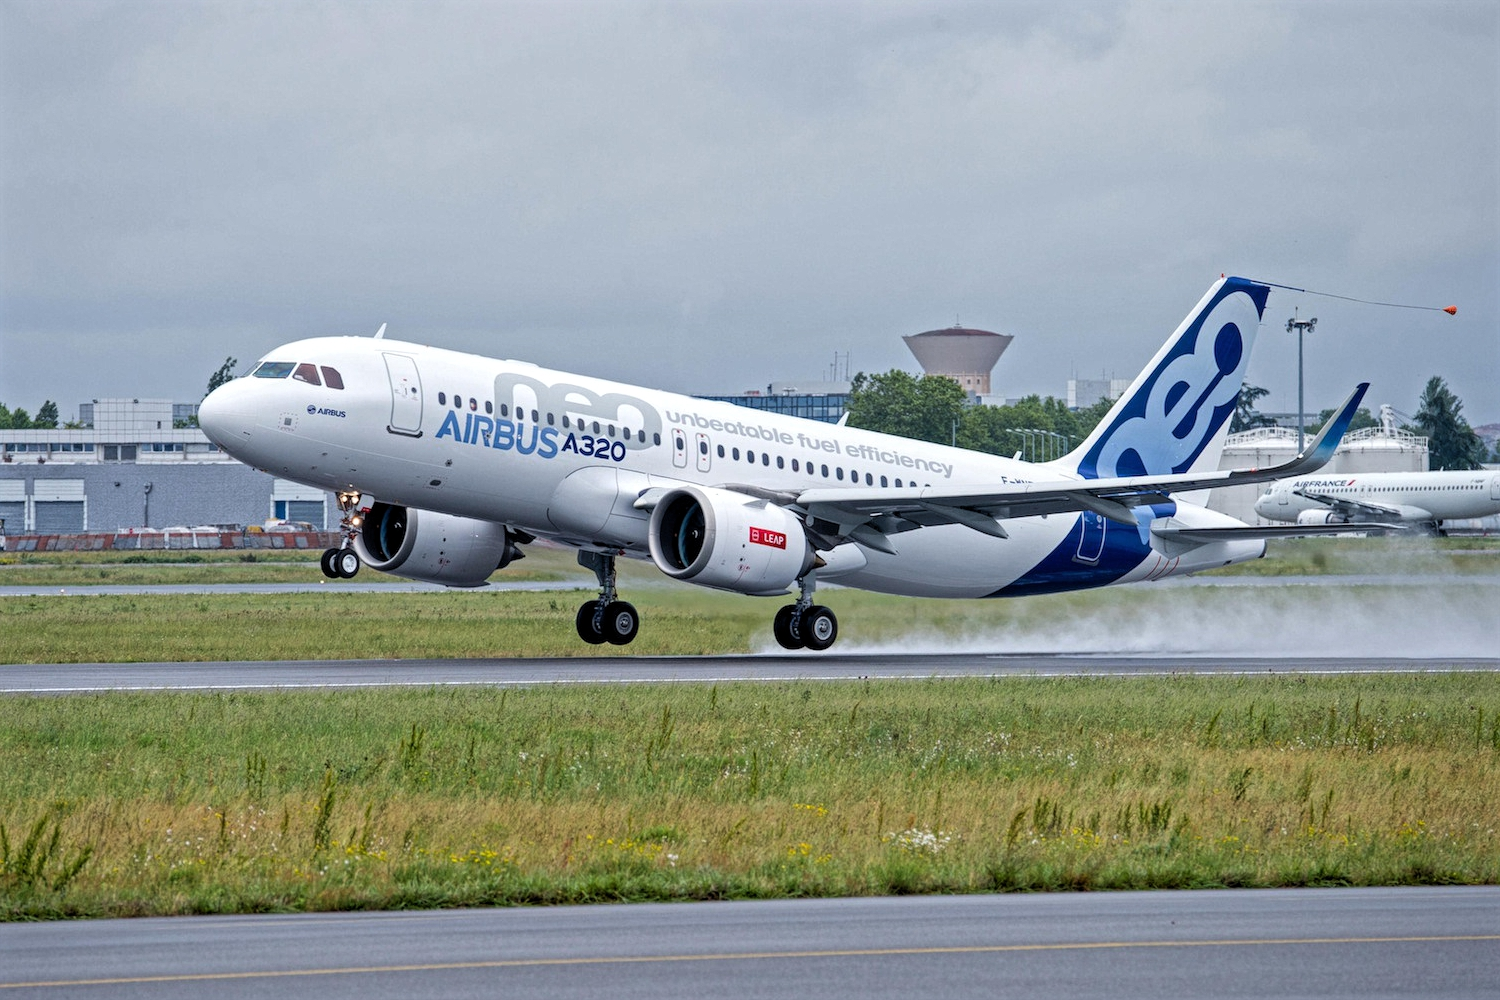 CALC Adds 15 Airbus A320neos In The Latest Order - AERONEF NET